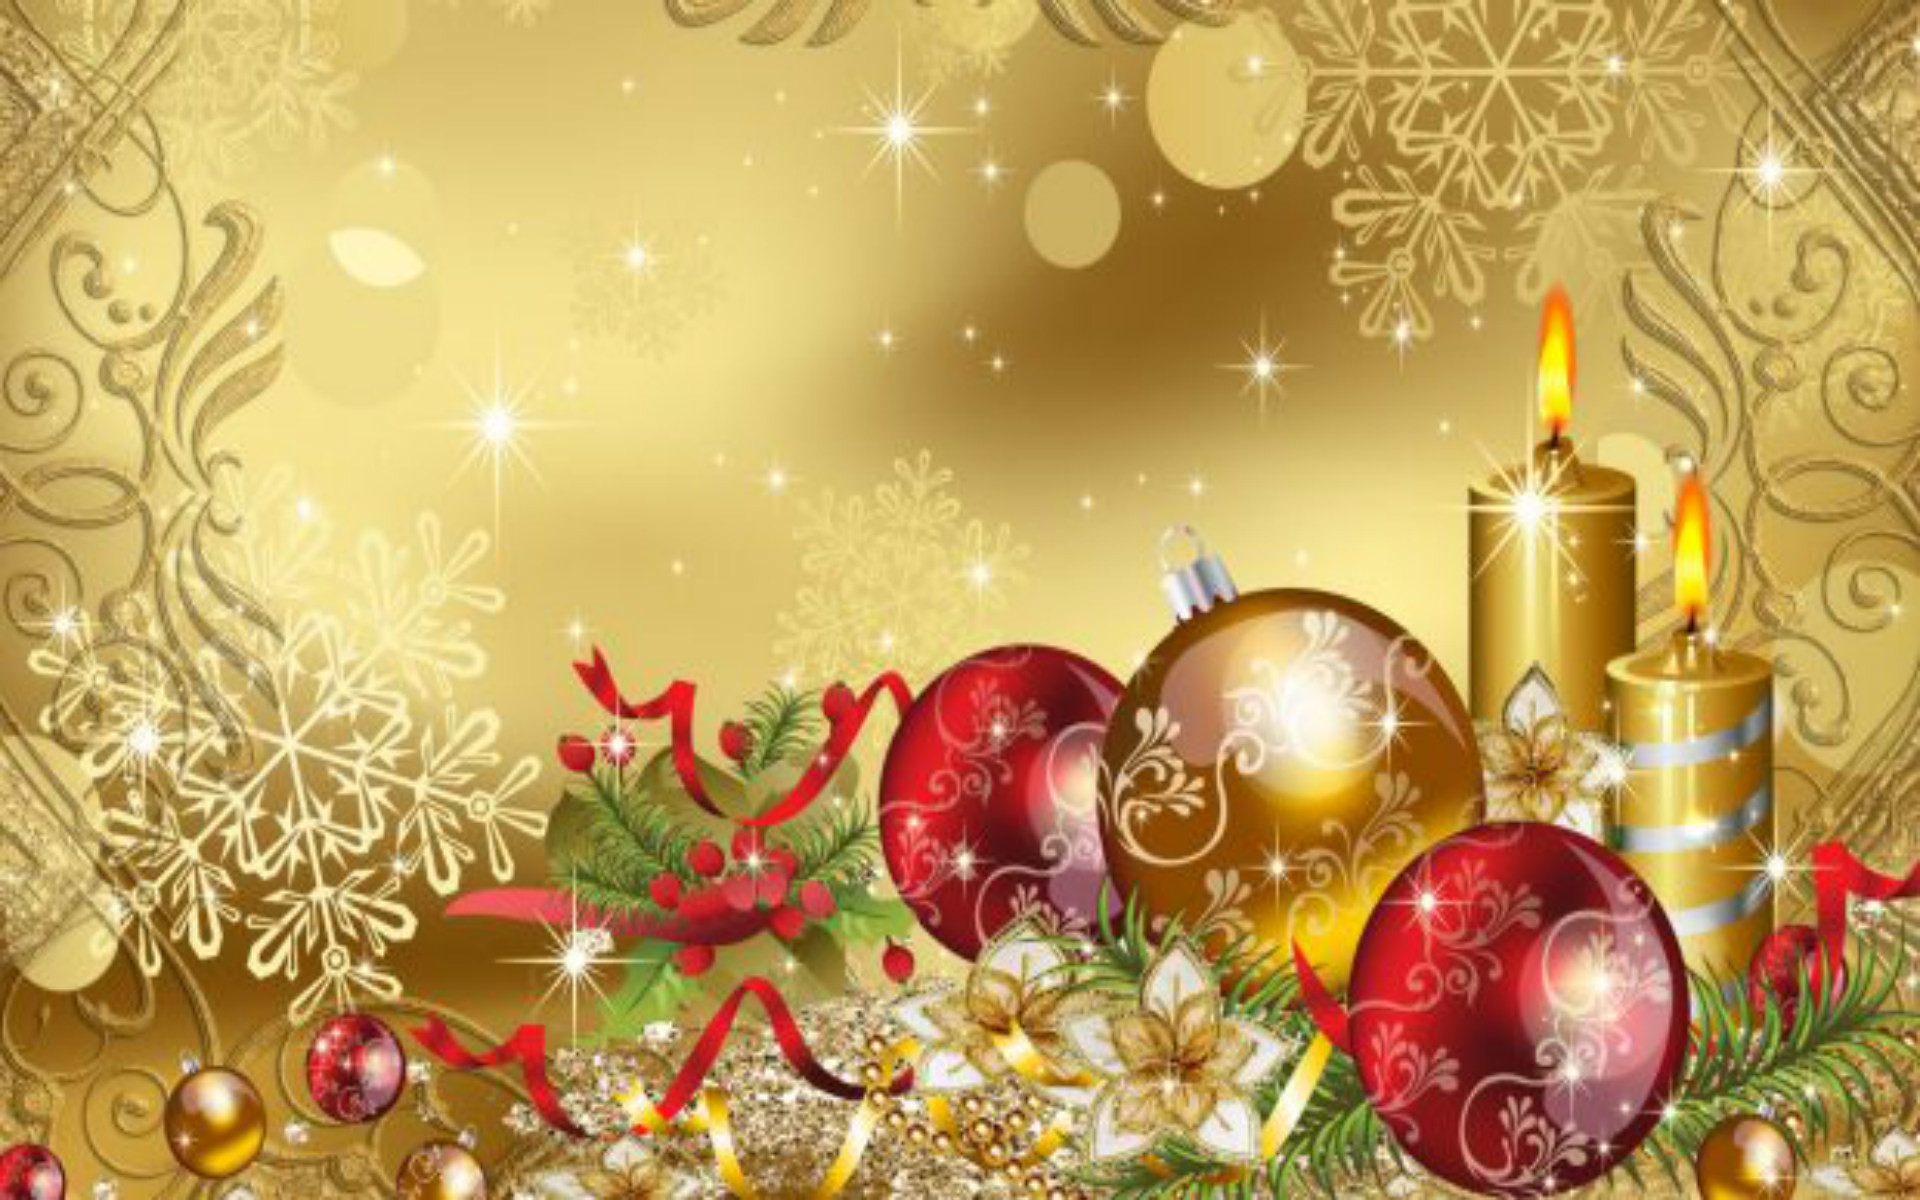 desktop christmas background collection 76; pink christmas backgrounds  wallpaper cave; 23 merry christmas backgrounds merry christmas …